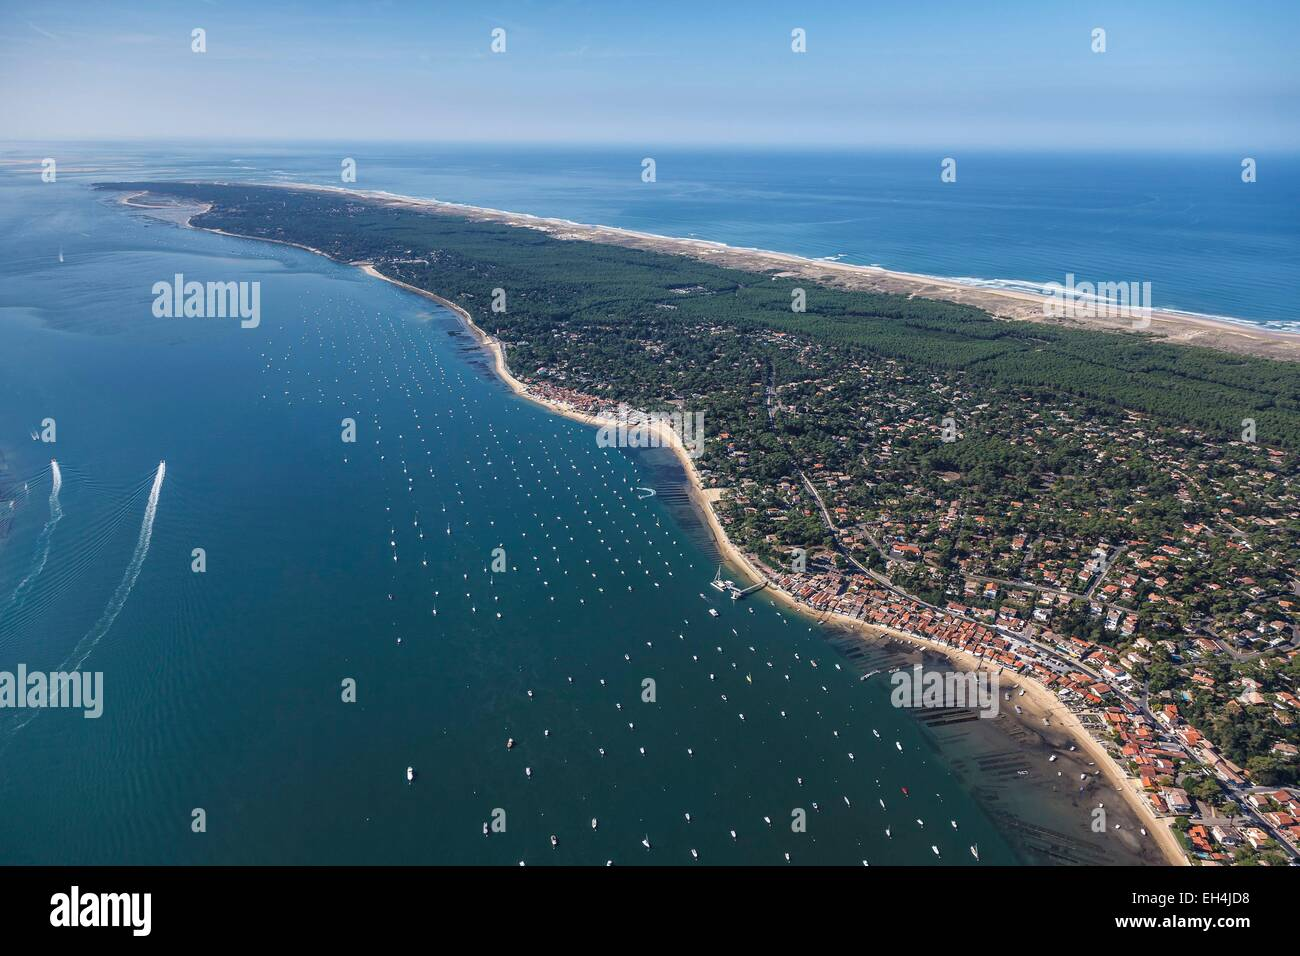 France, Gironde, Lege Cap Ferret, le Canon, the seaside resort on the Bassin d'Arcachon and the Cap Ferret (aerial Stock Photo